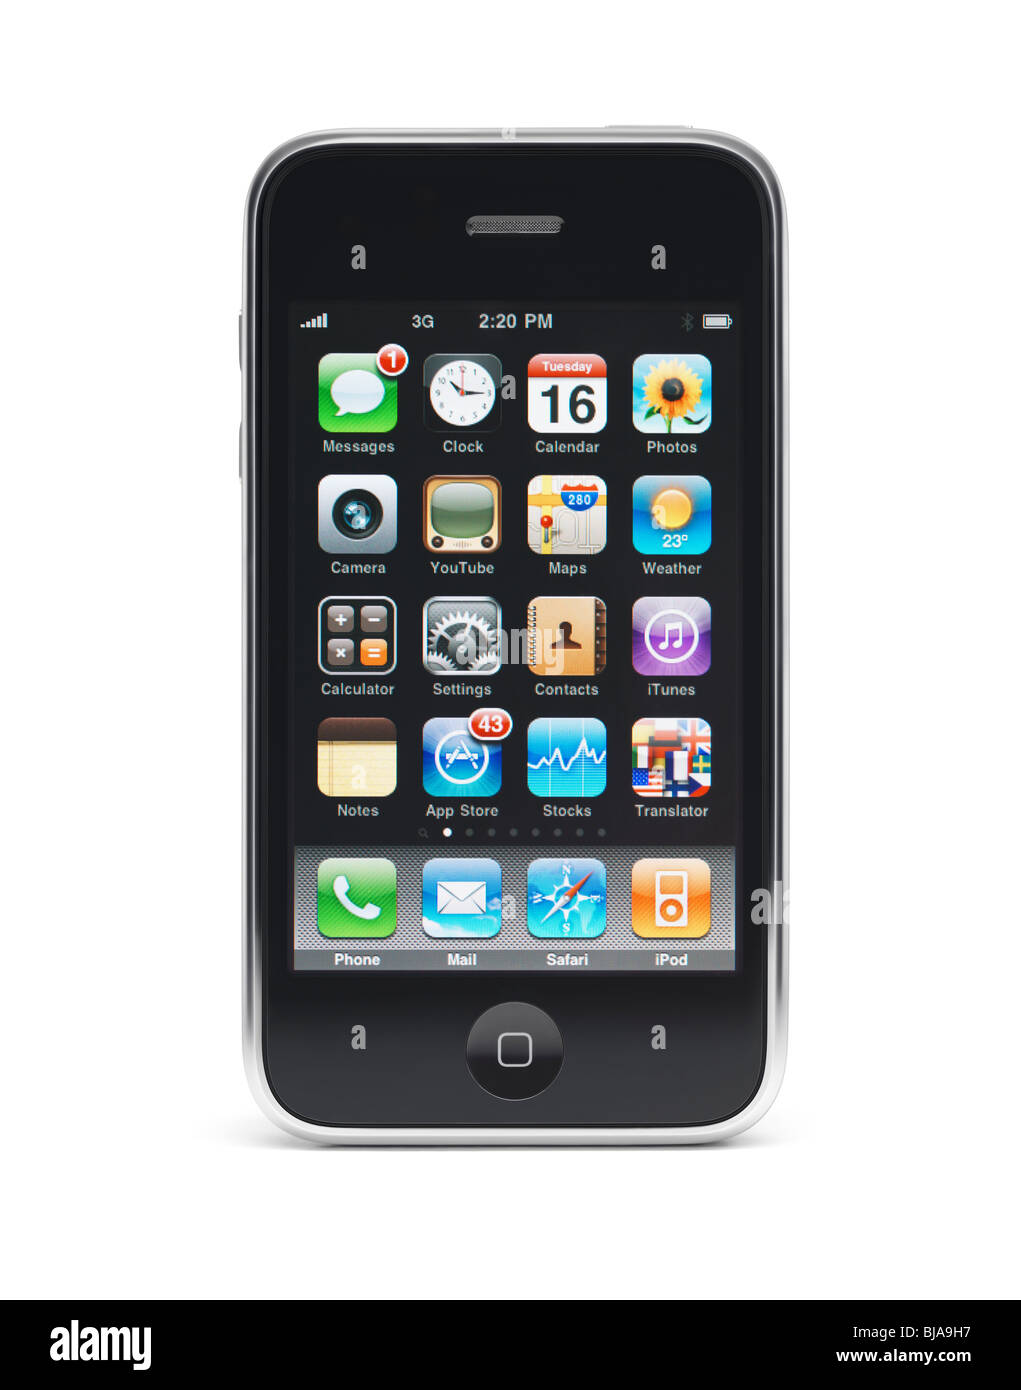 Apple iPhone 3Gs 3G smartphone with apps displayed on the screen isolated with clipping path on white background - Stock Image